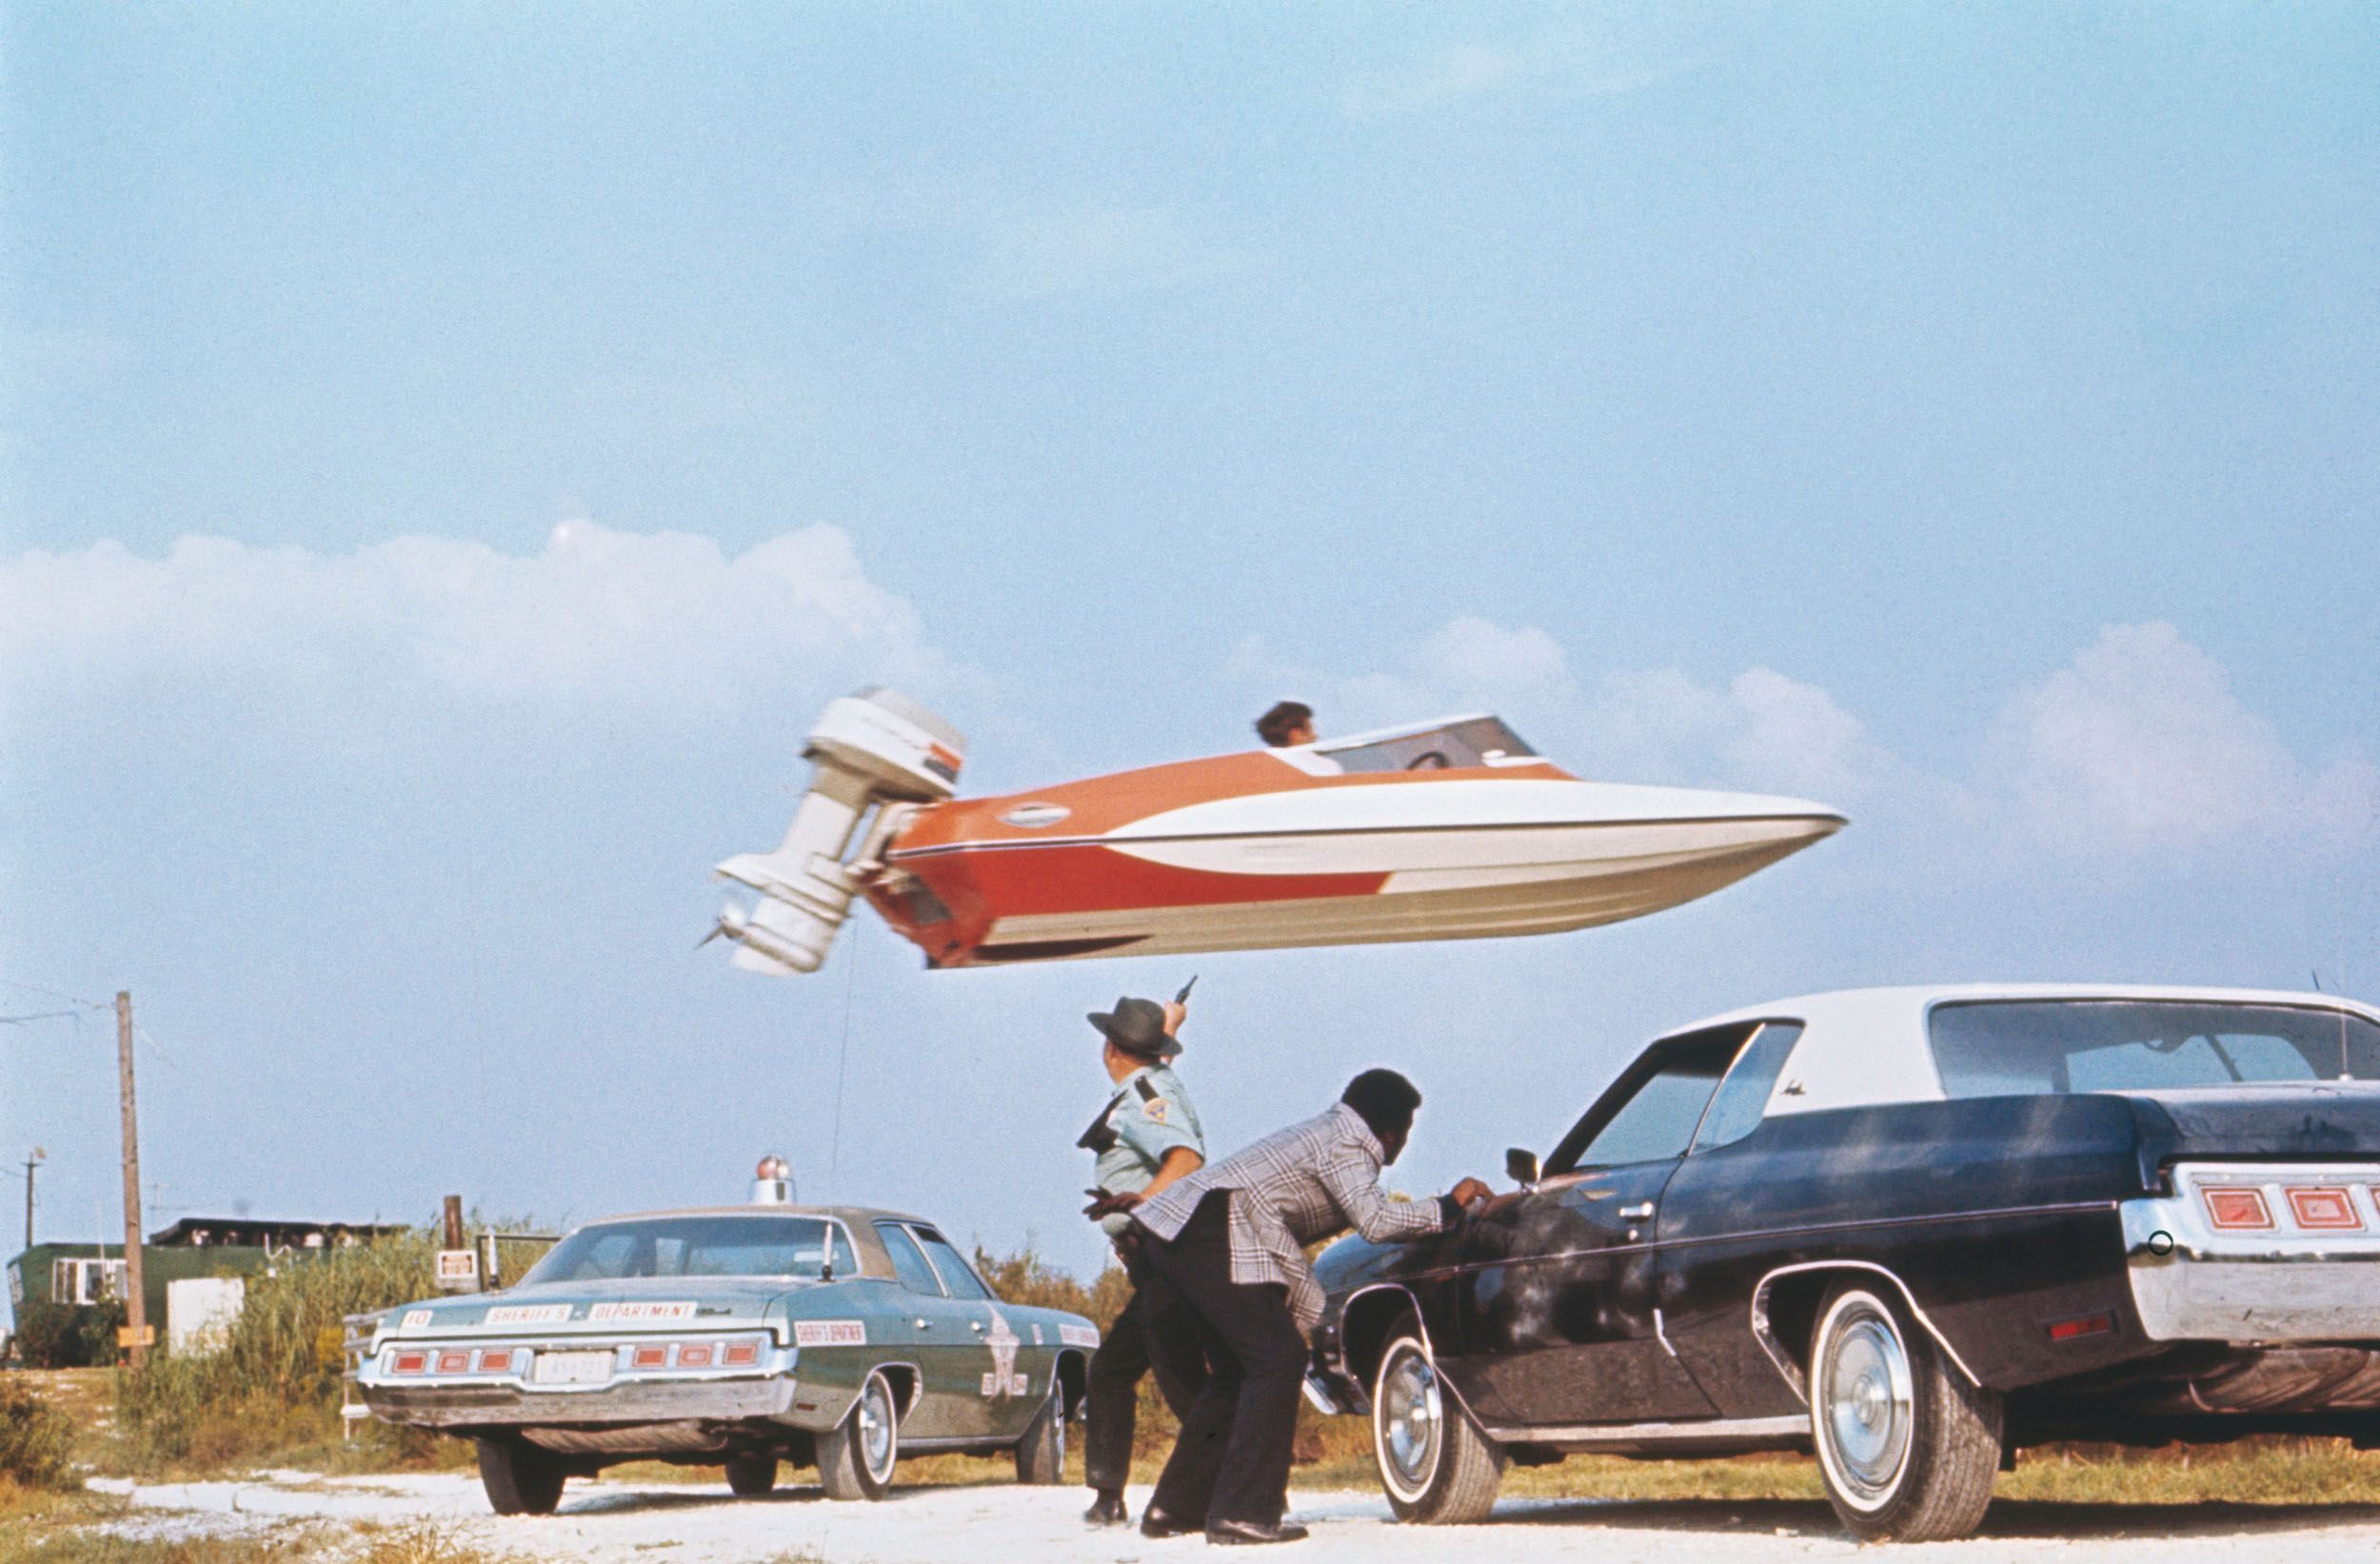 Stunt performer Jerry Comeaux jumps a Glaston GT-50 speedboat over police officers and their squads as part of an escape scene from Live and Let Die.